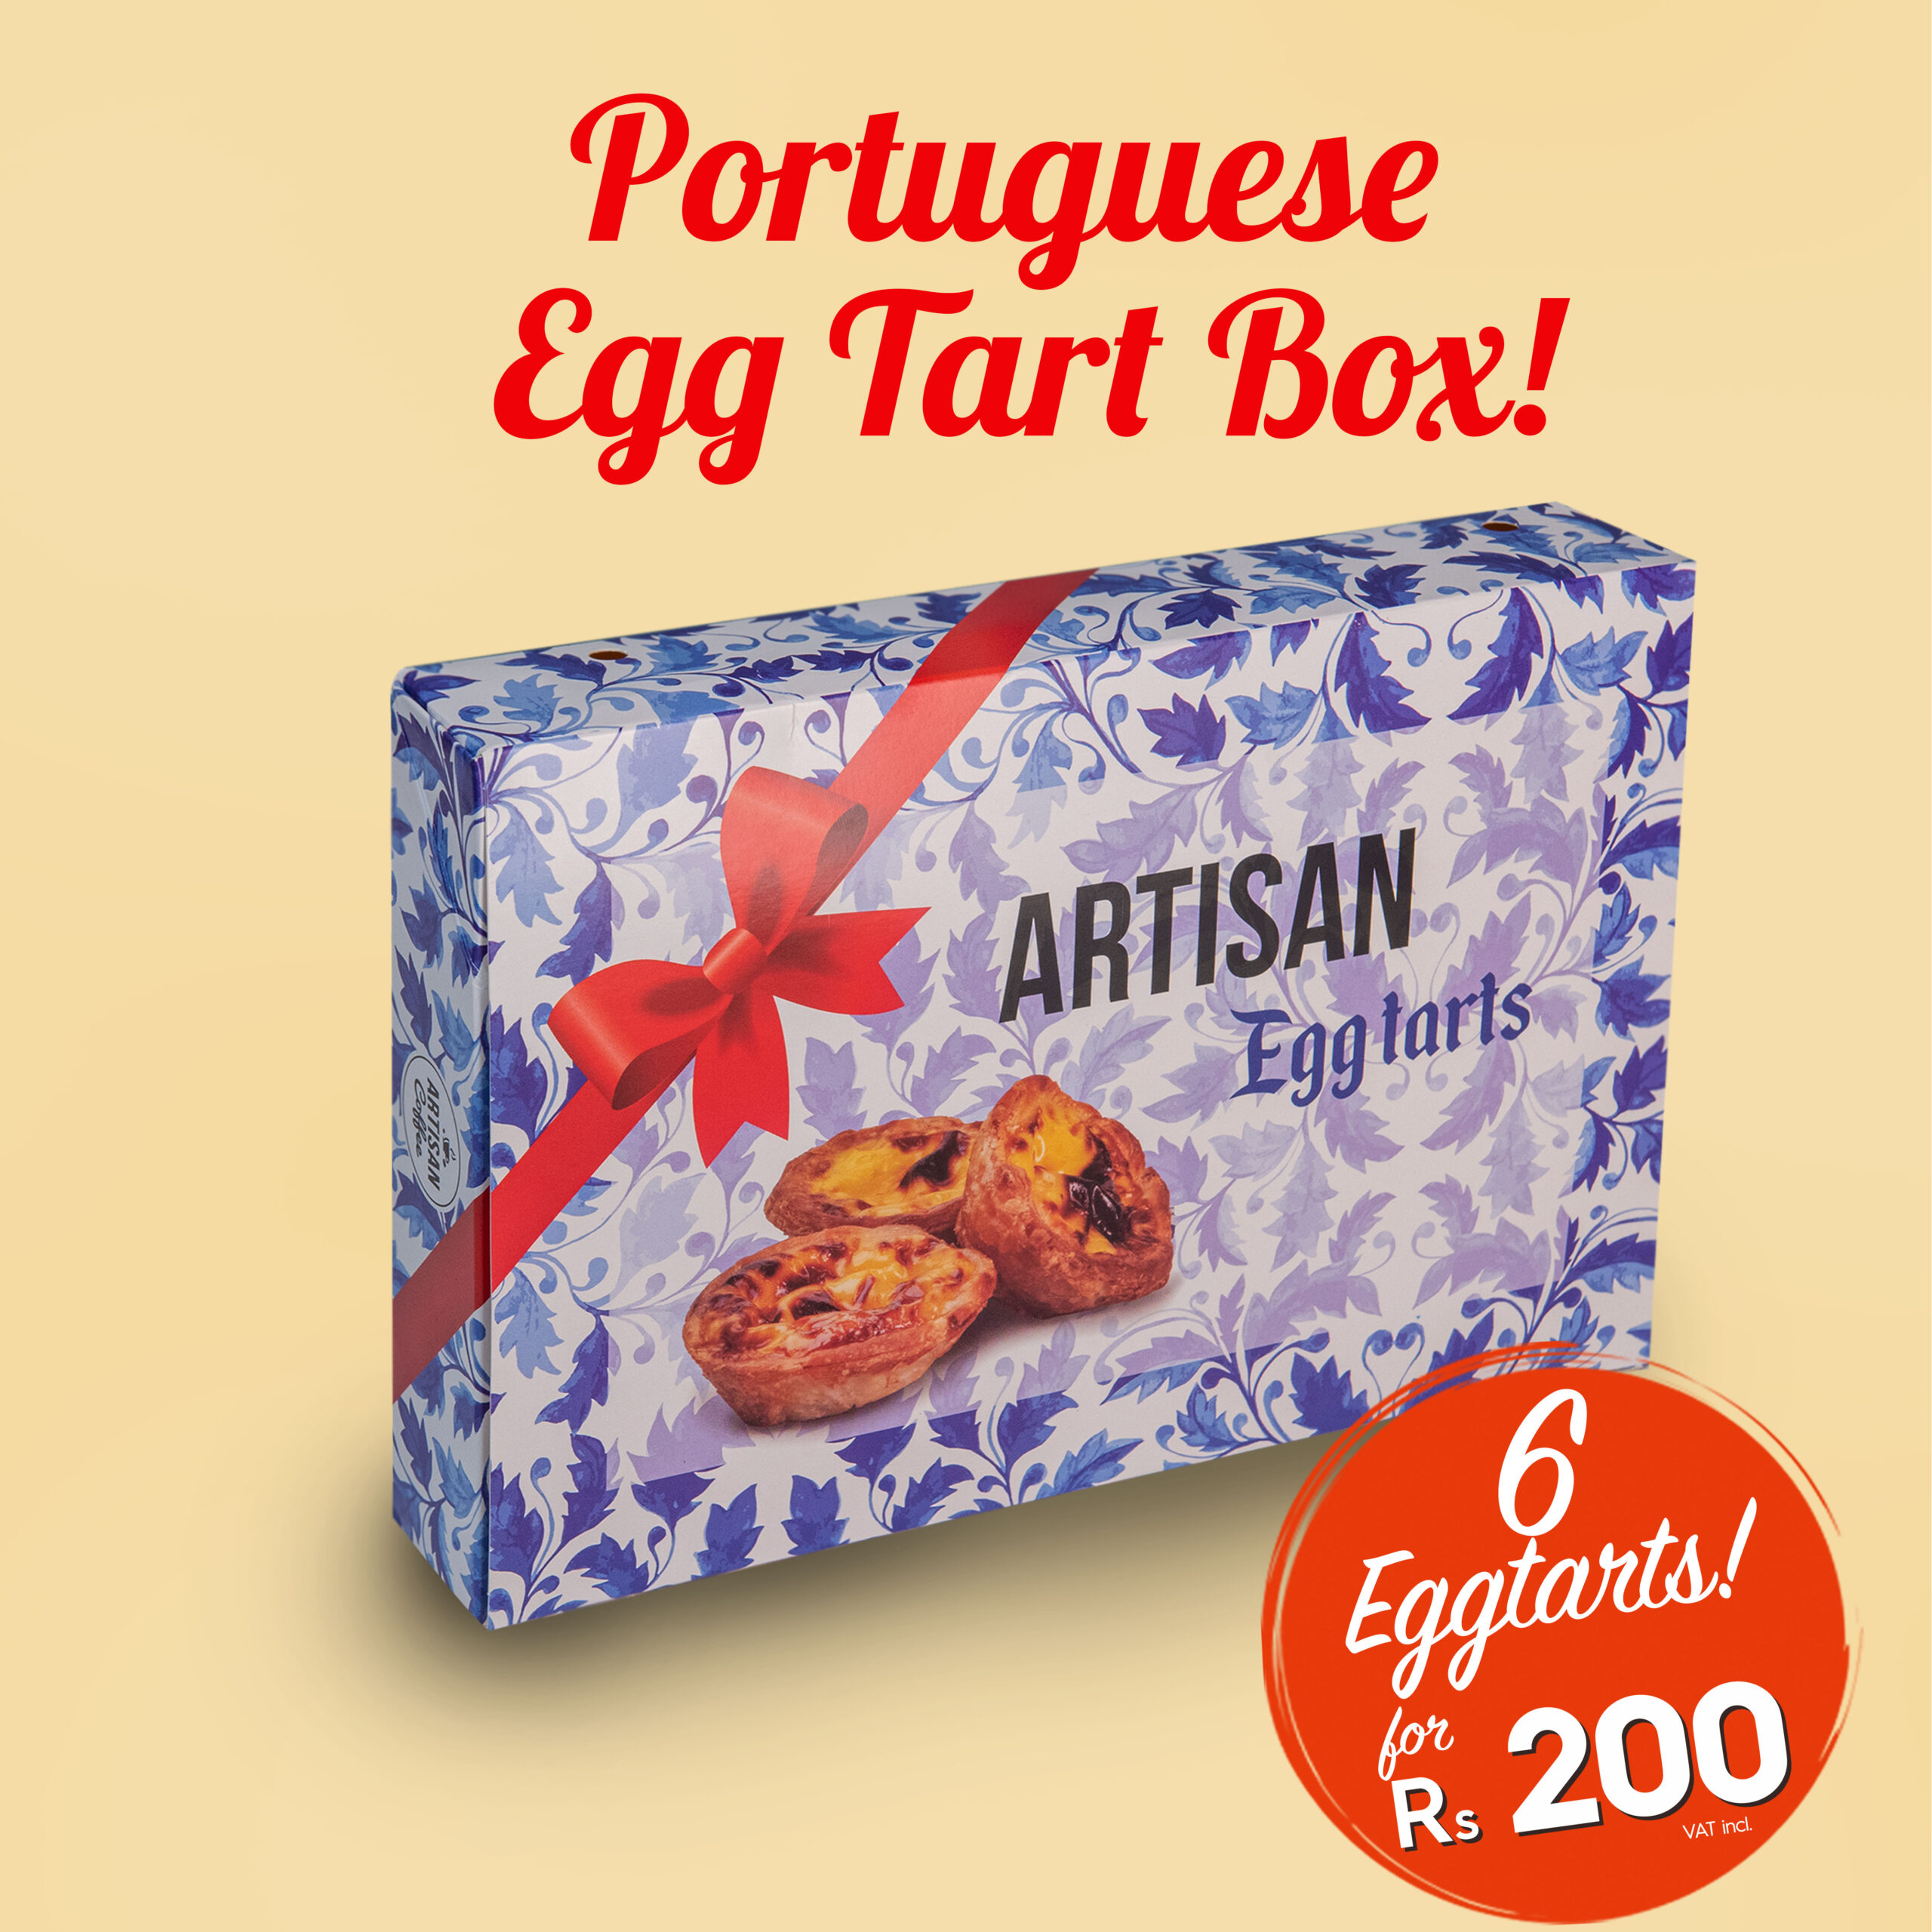 Egg tarts for Rs 200 at Artisan Coffee